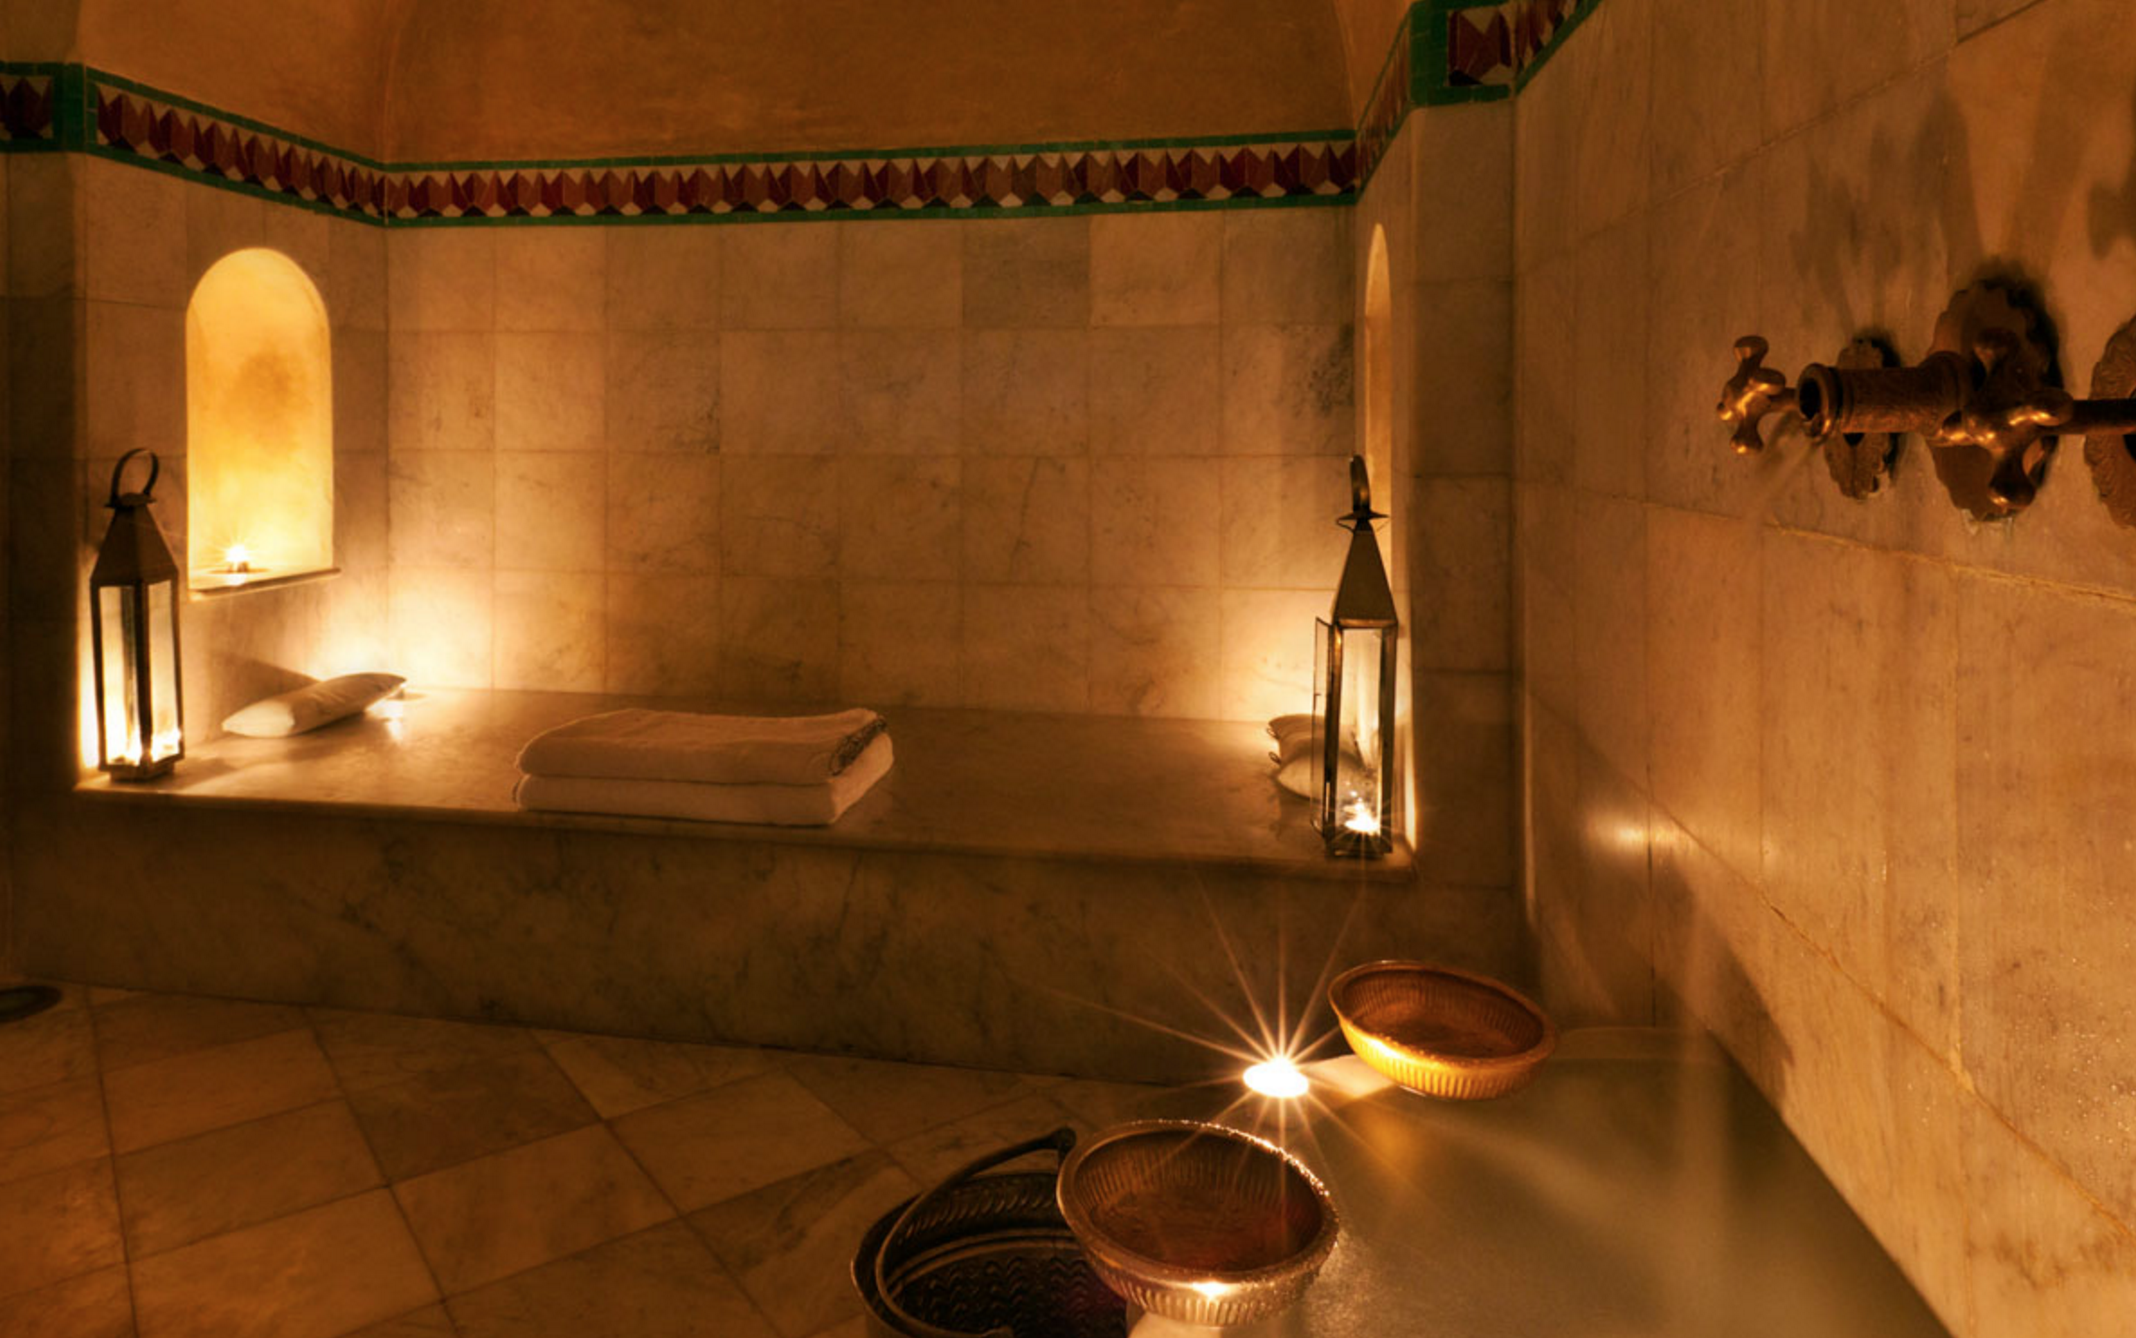 The beautiful and intimate Hammam at Riad Farnatchi